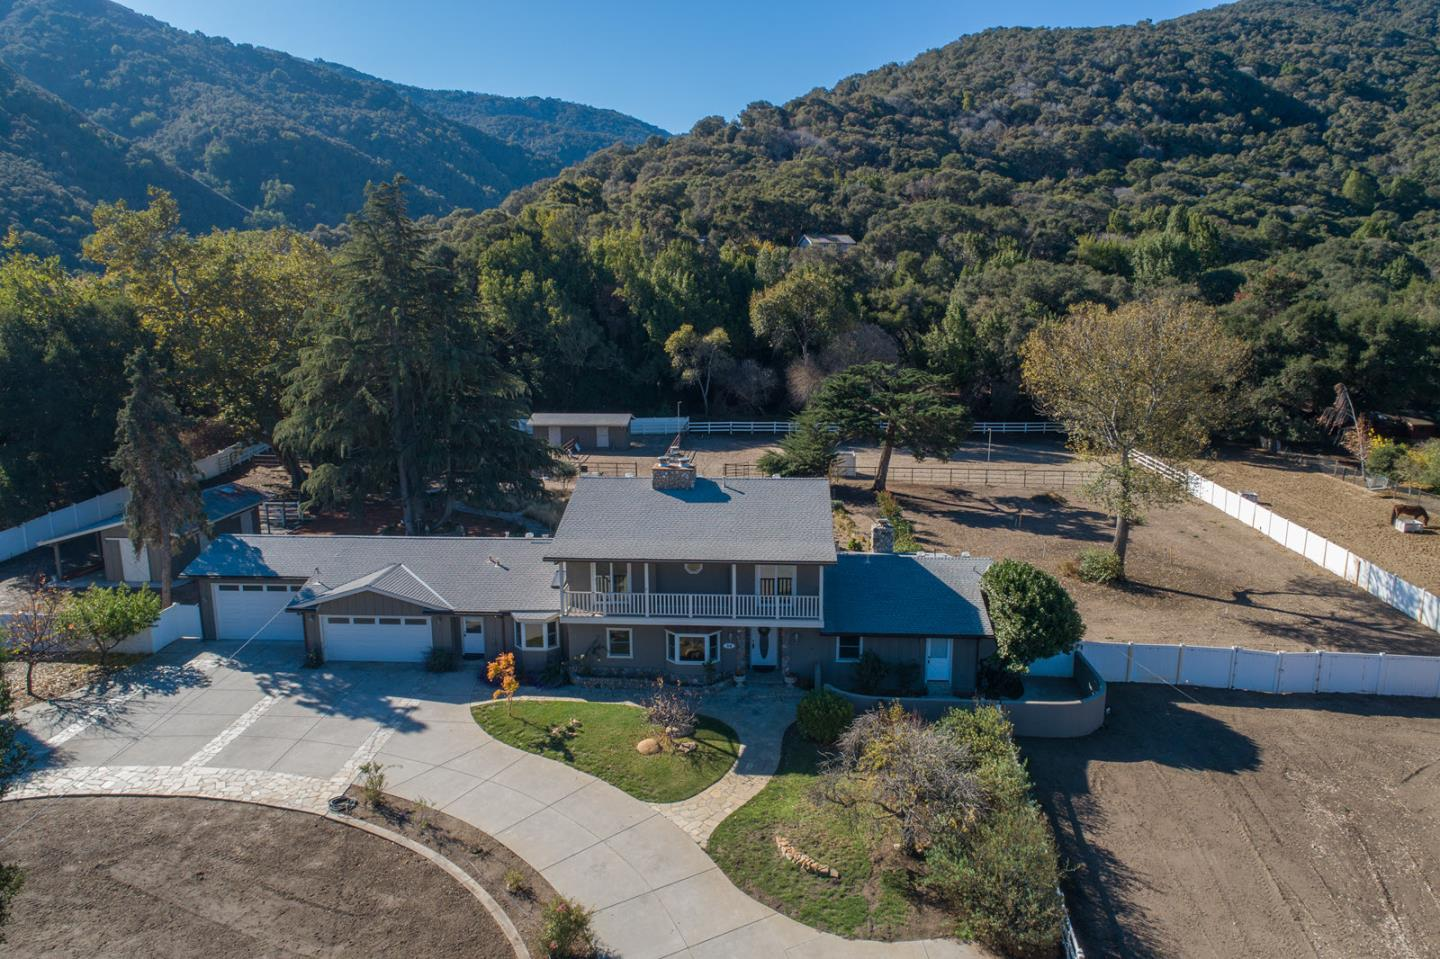 Property for sale at 56 W Garzas RD, Carmel Valley,  California 93924